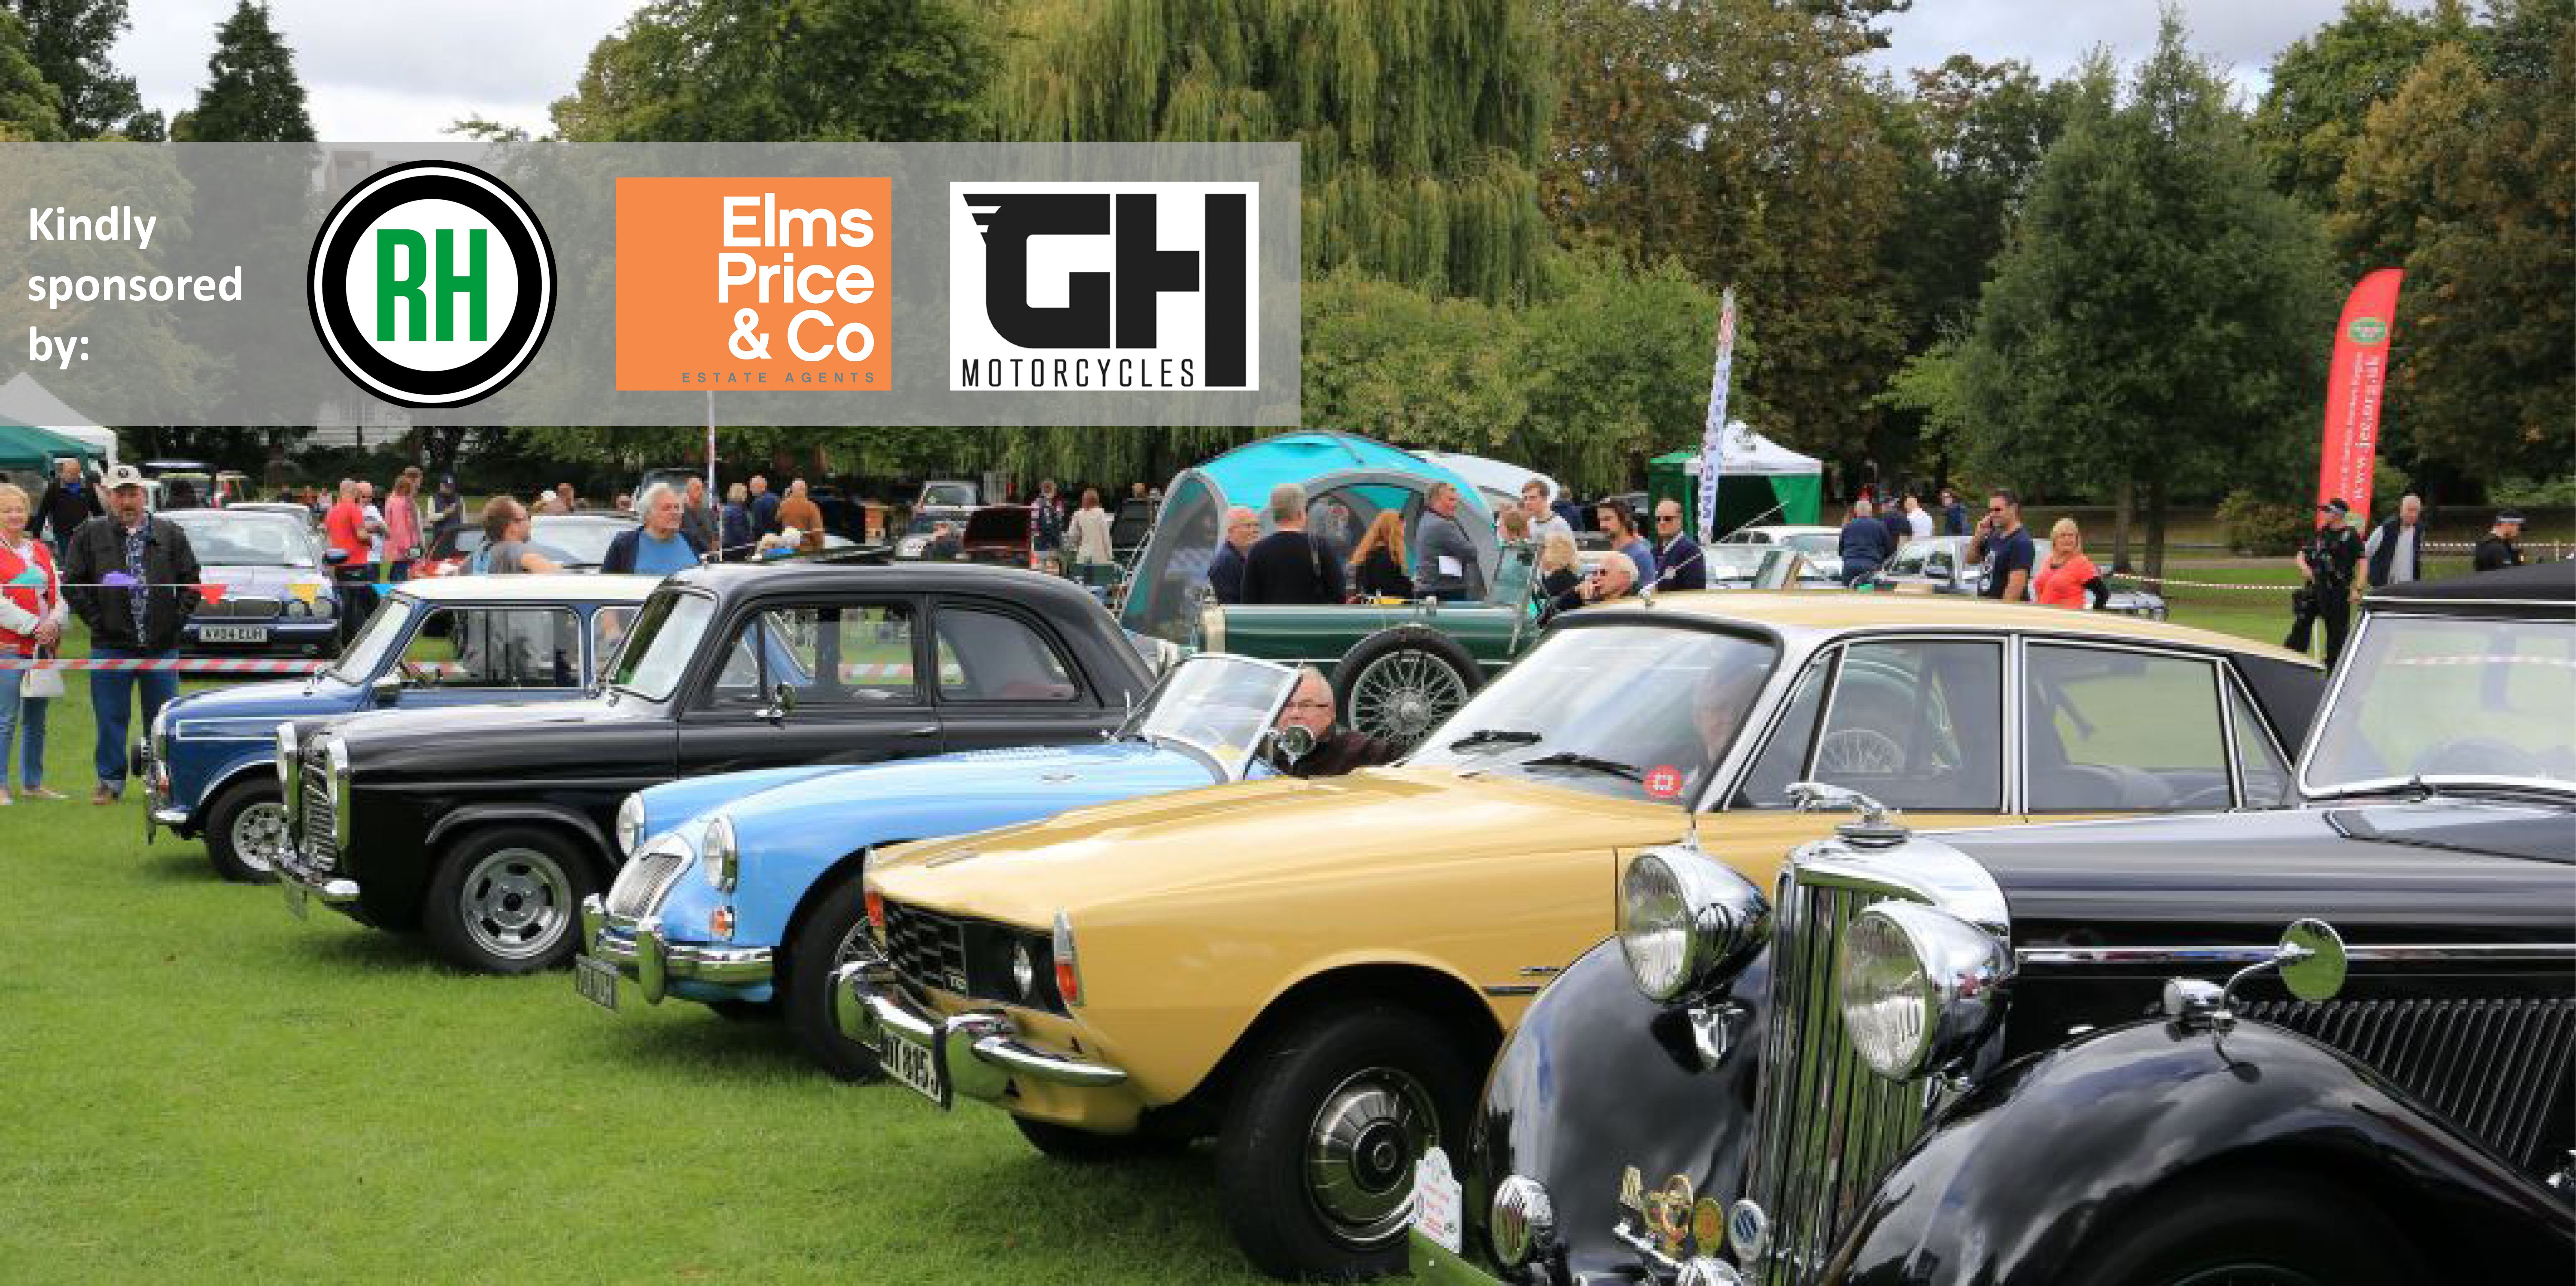 Essex Classic Vehicle Show Headway Essex - Classic car shows near me